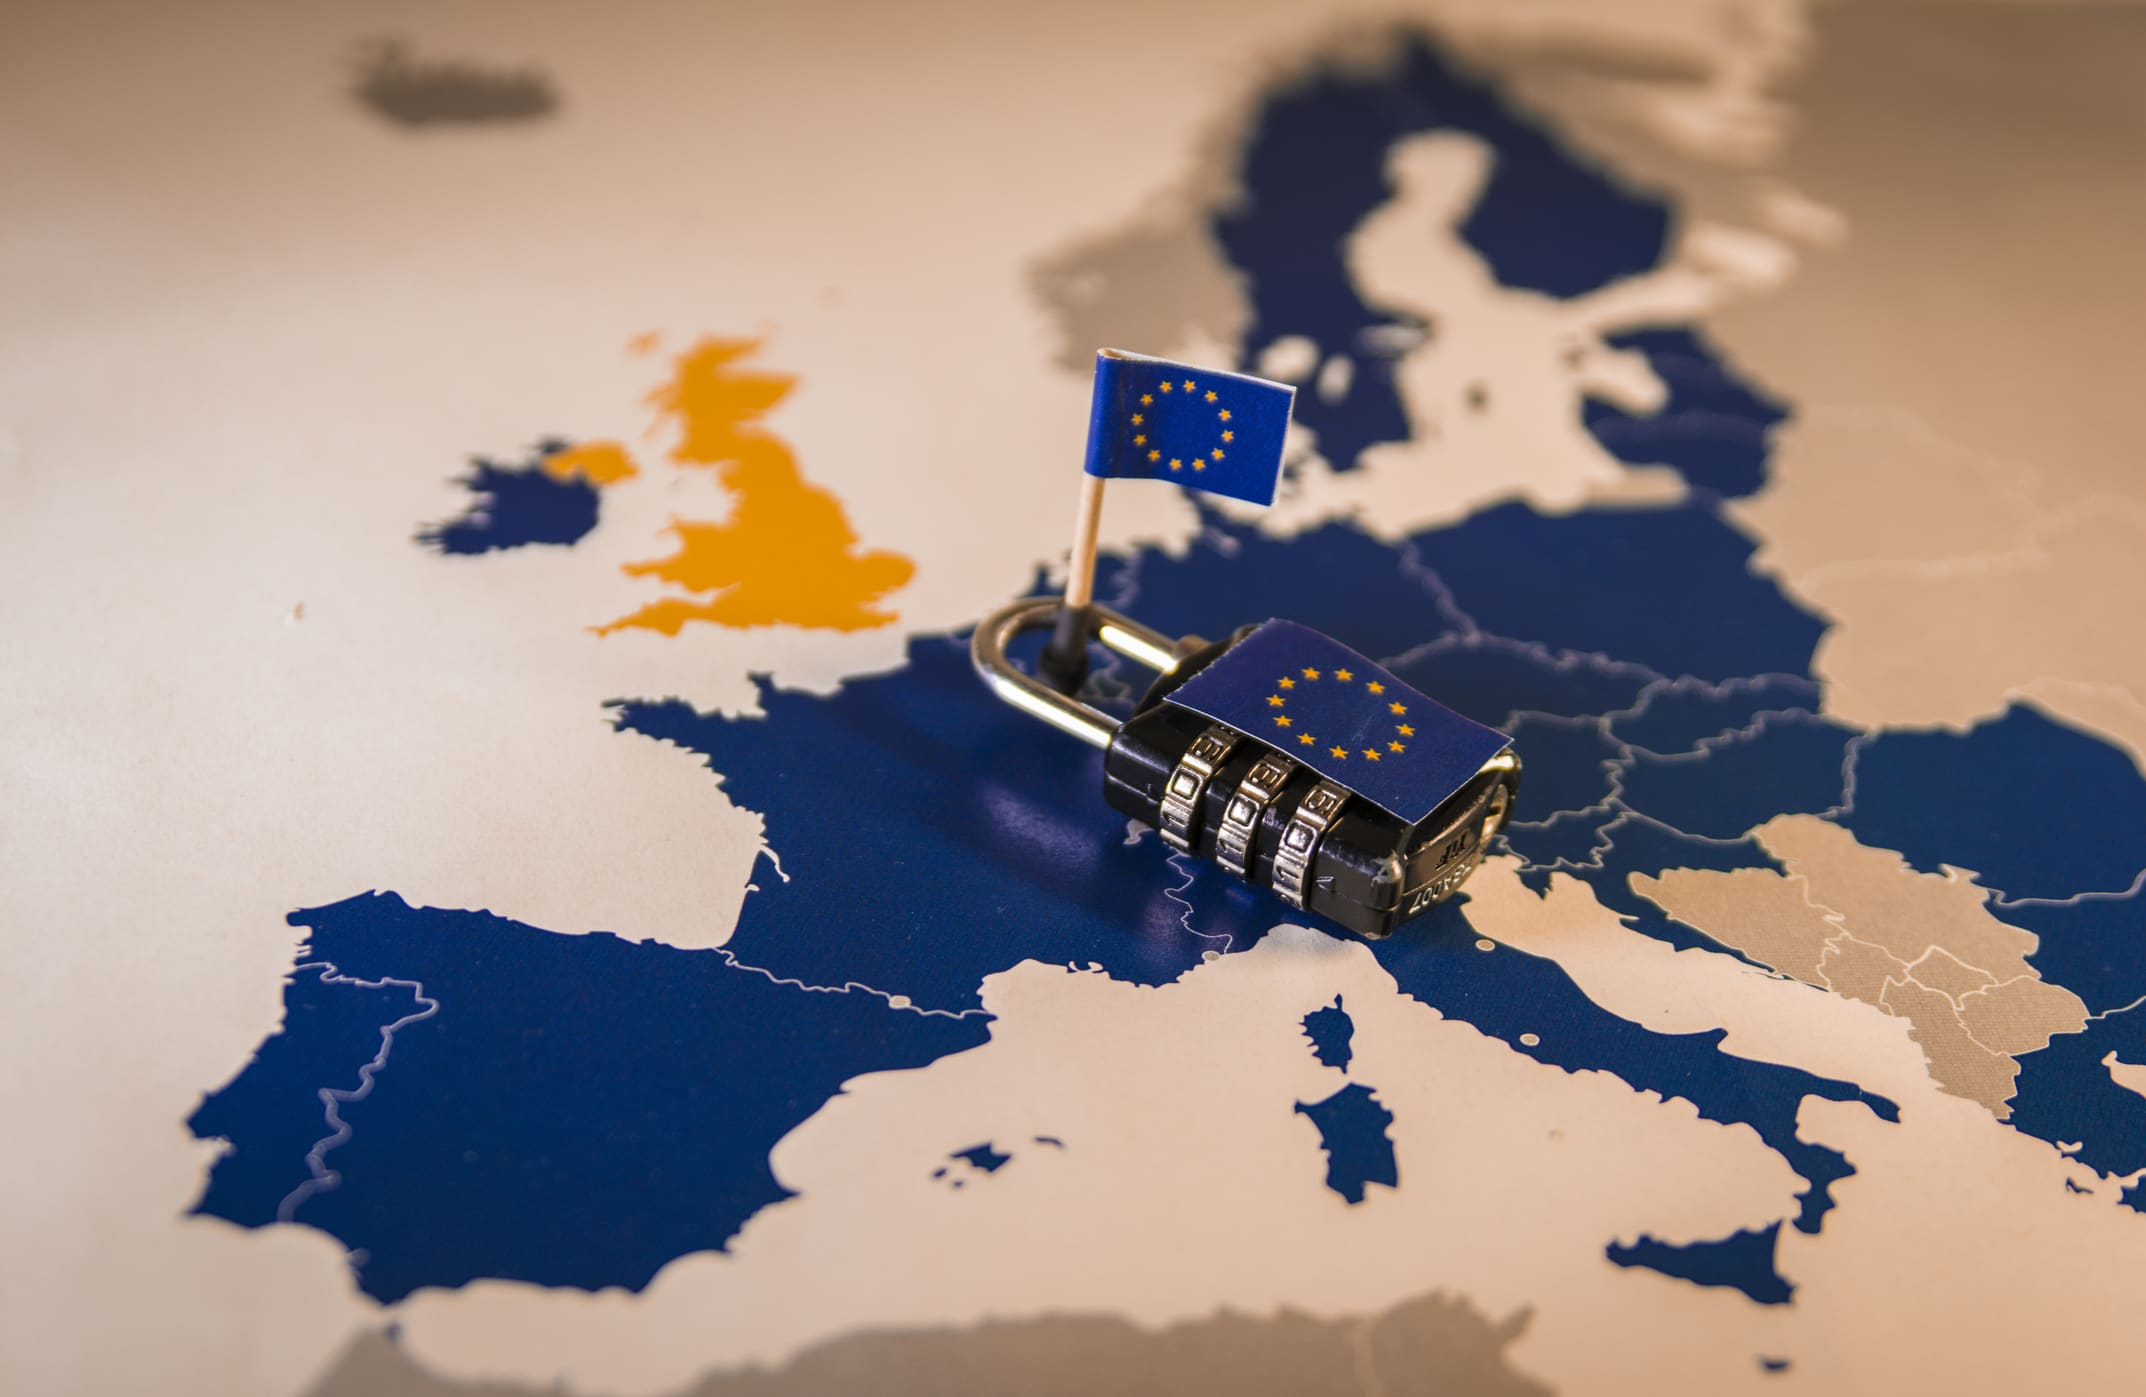 The US wants to copy Europe's strict data privacy law – but only some of it